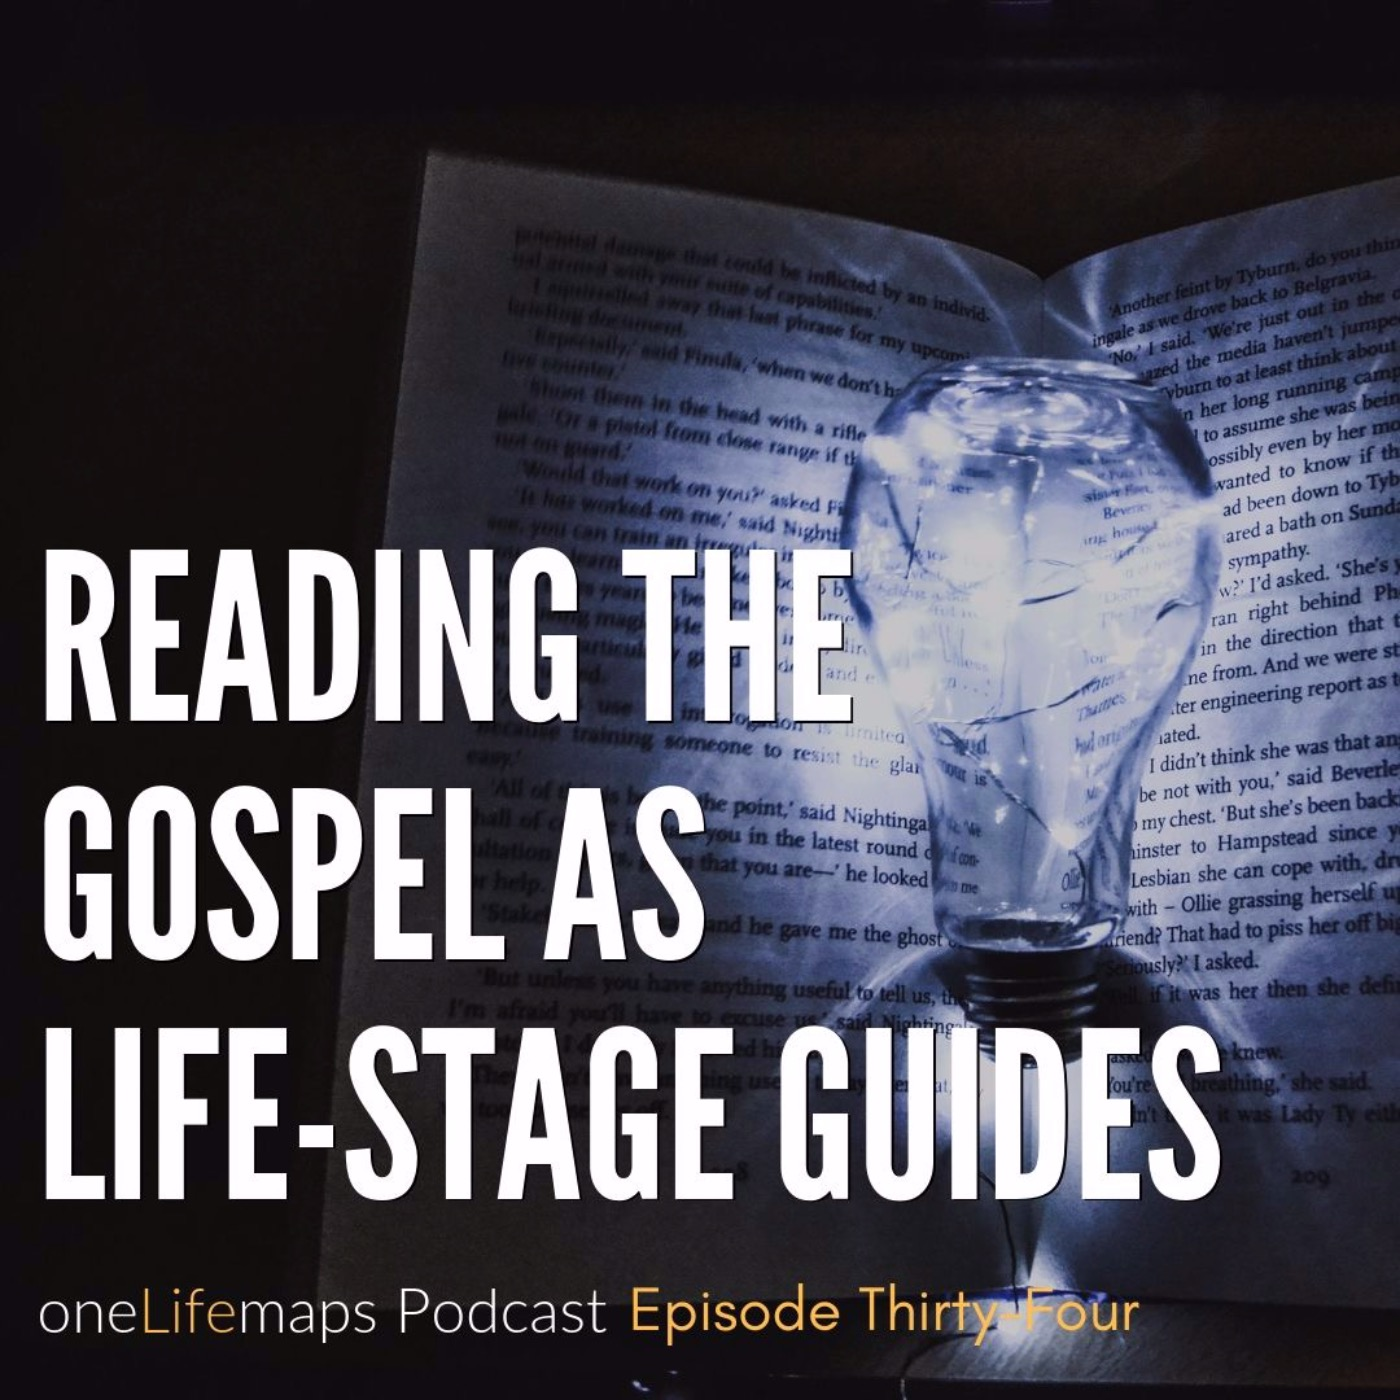 Reading the Gospels as Life-Stage Guides